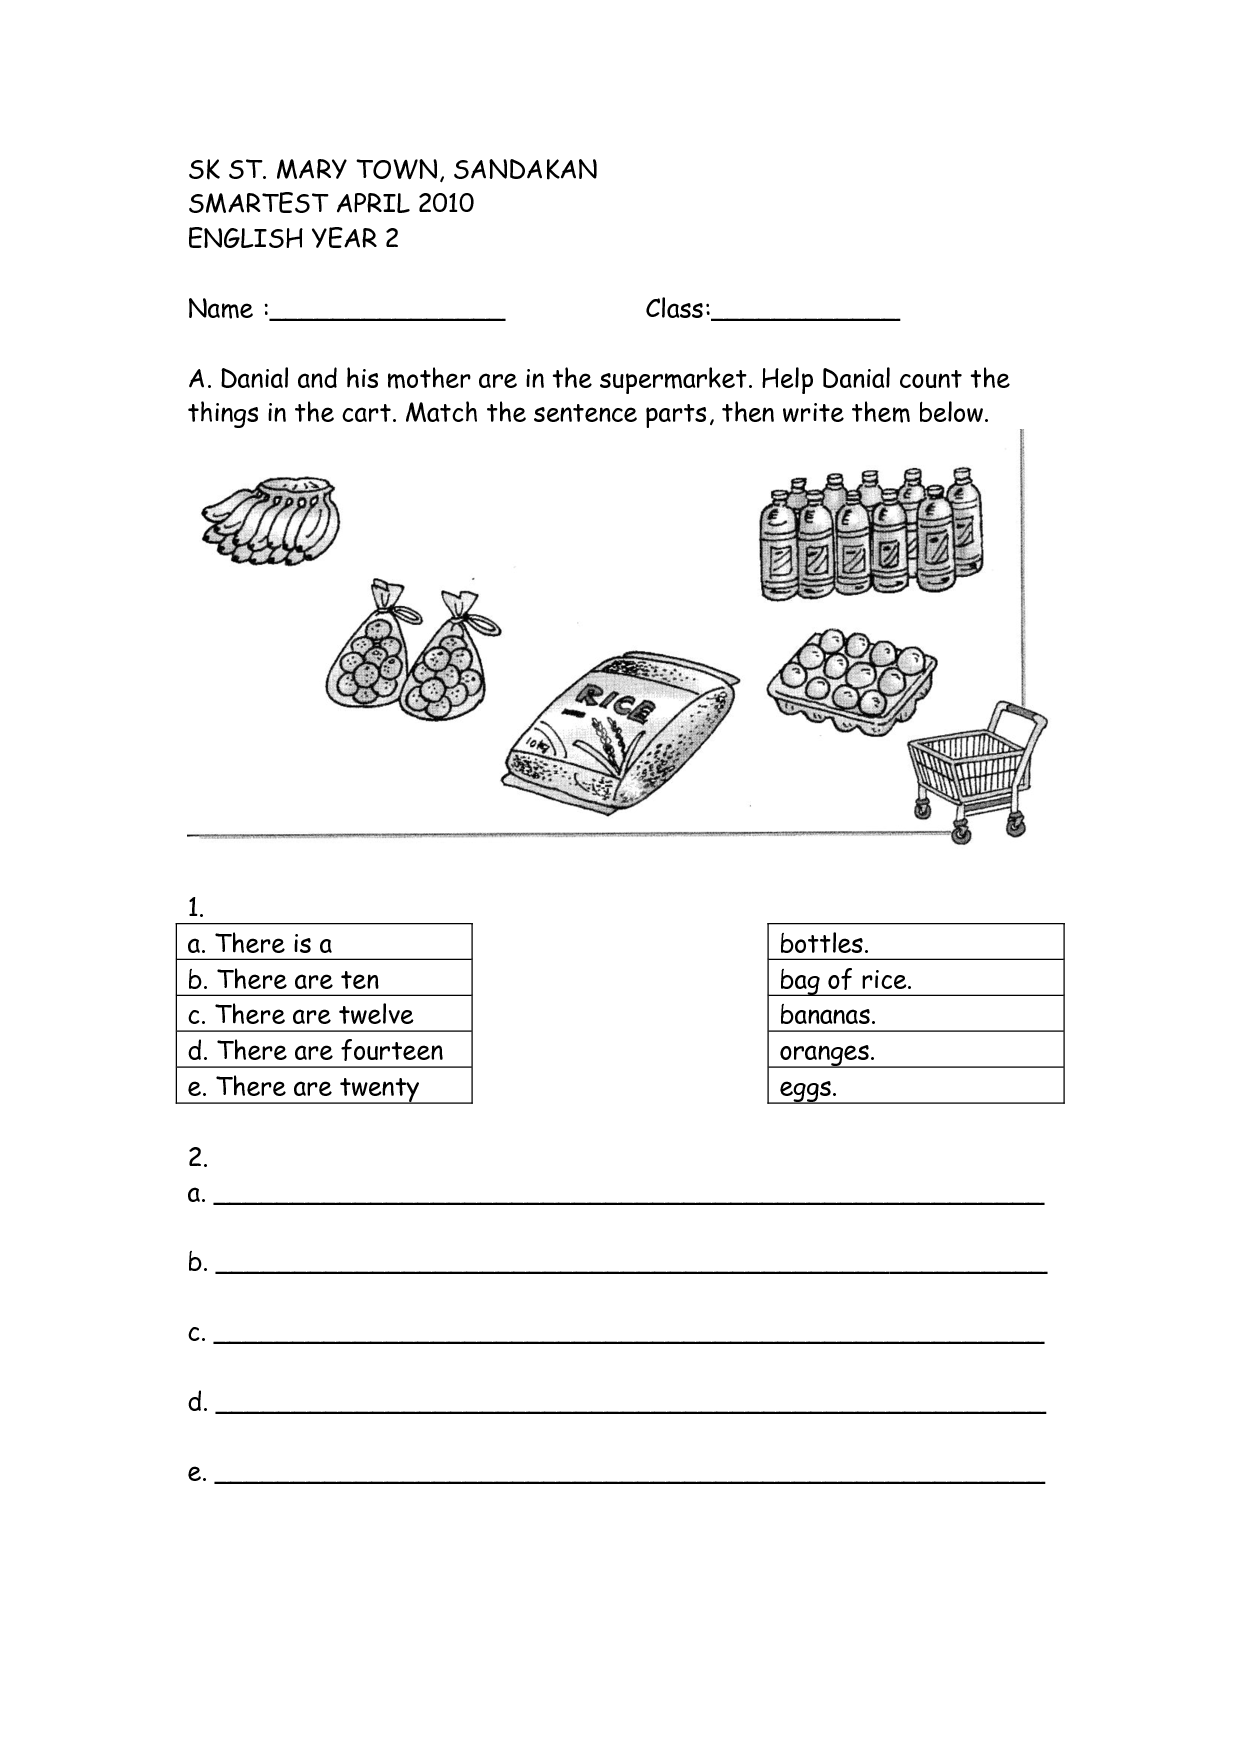 16 Best Images Of 2 Year English Test Worksheets